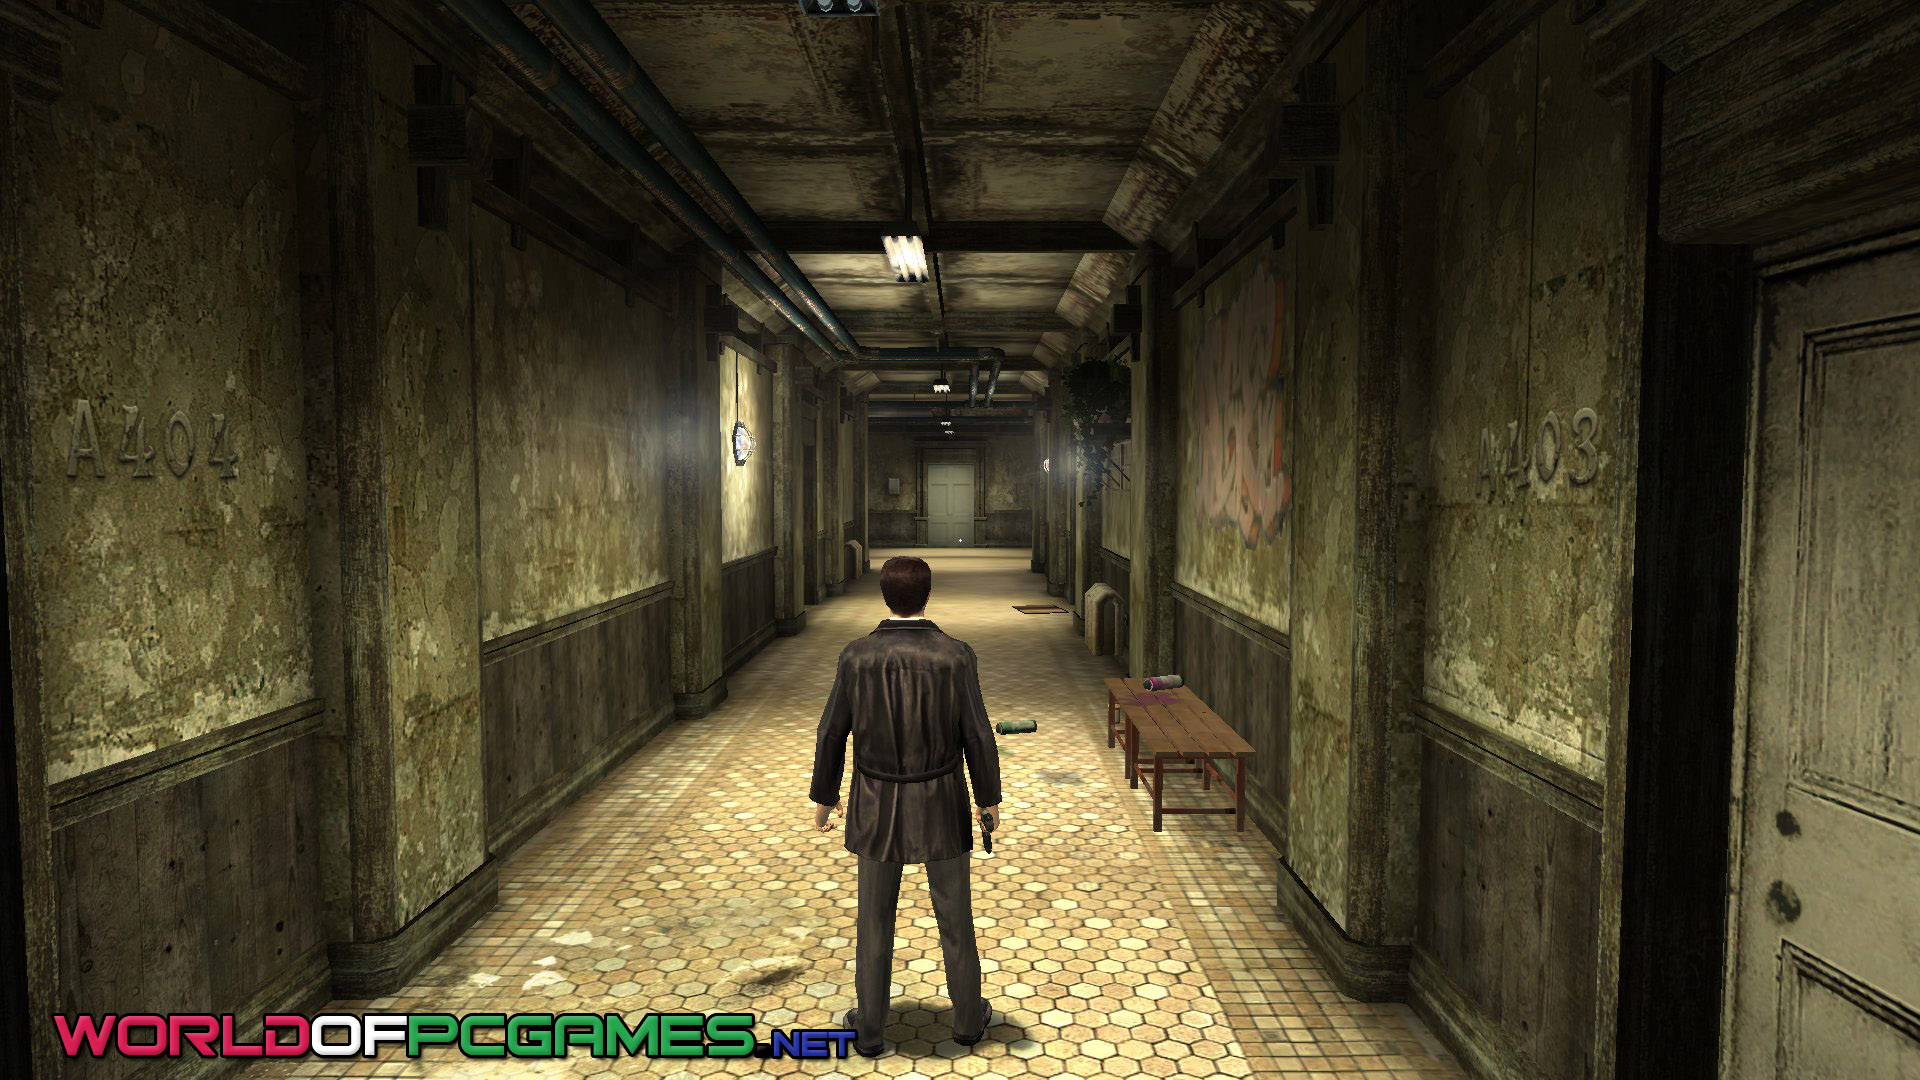 max payne 2 pc game download for windows 7